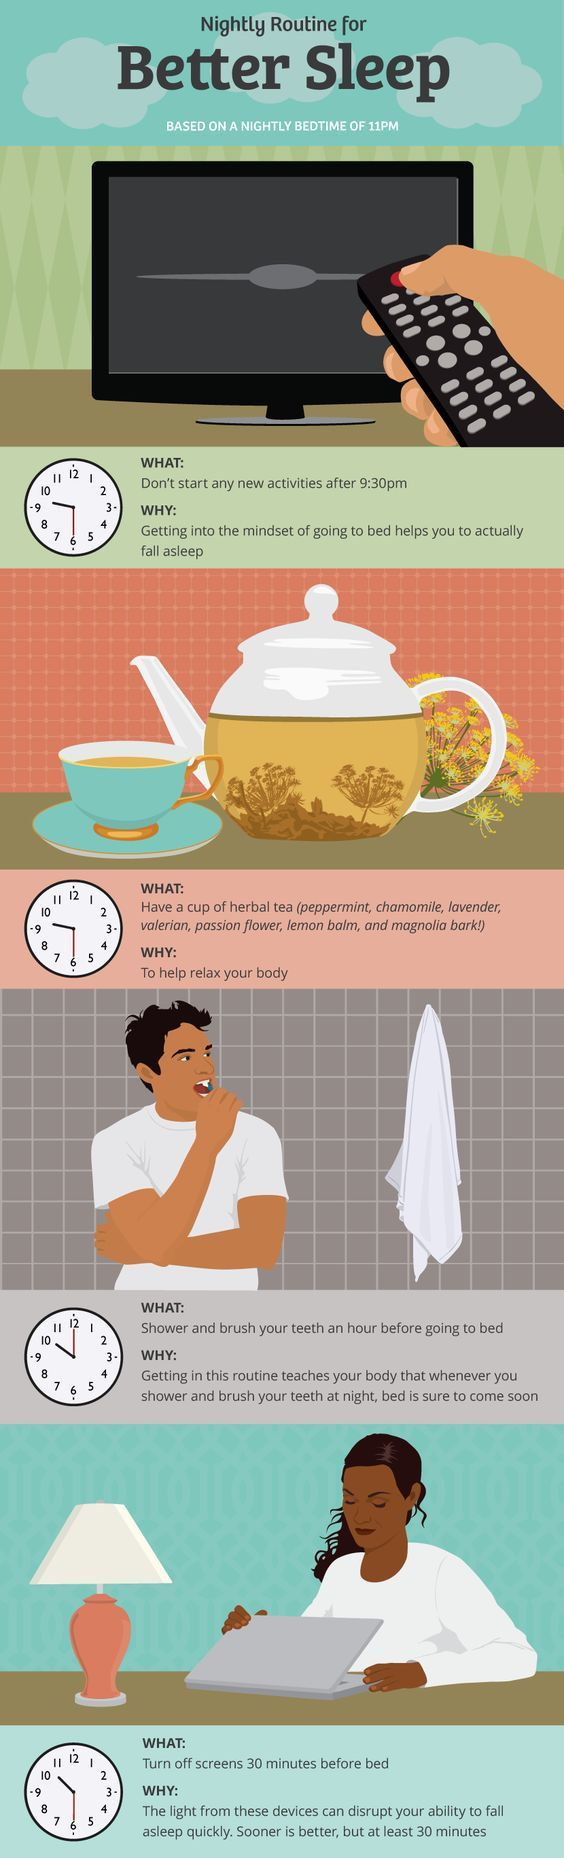 Nightly Routine for Better Sleep